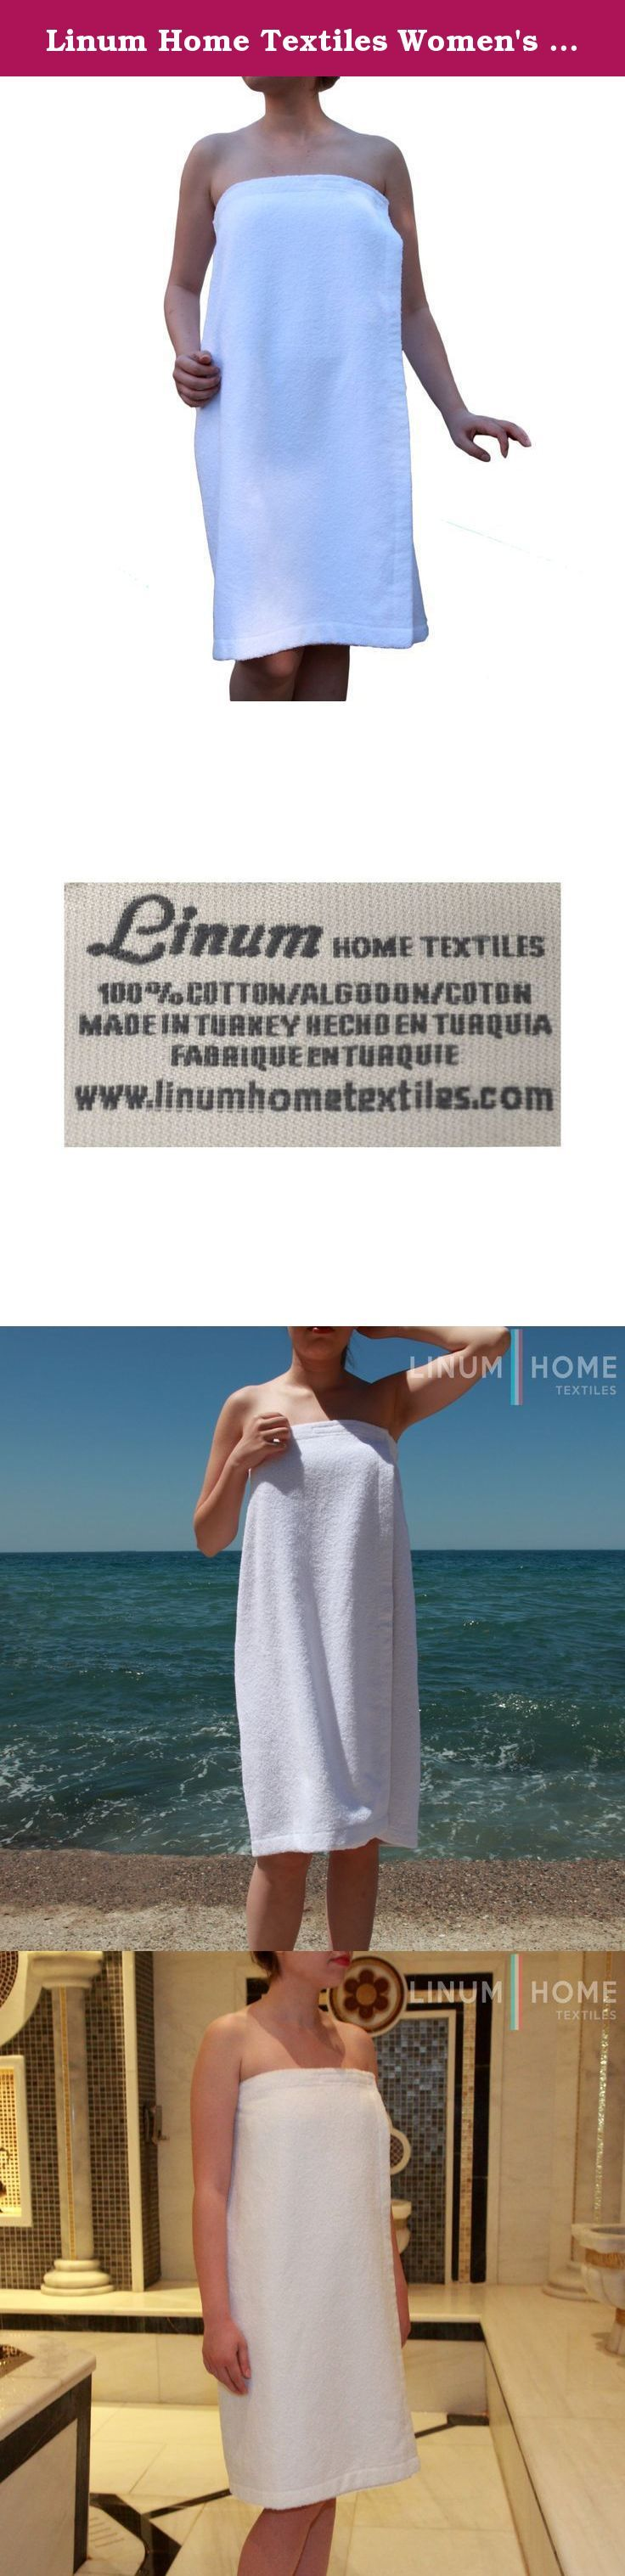 Linum Home Textiles Women's Terry Wrap Bathrobe. Do you love hanging out in your towel post-shower, but maybe need some help mastering the tuck-and-fold trick with a regular towel the Terry body wrap can solve your problem! the same thick, soft 100percent genuine Turkish cotton as our standard towels, but with a handy elastic and hook and loop fastener on the top to keep you covered and comfortable.